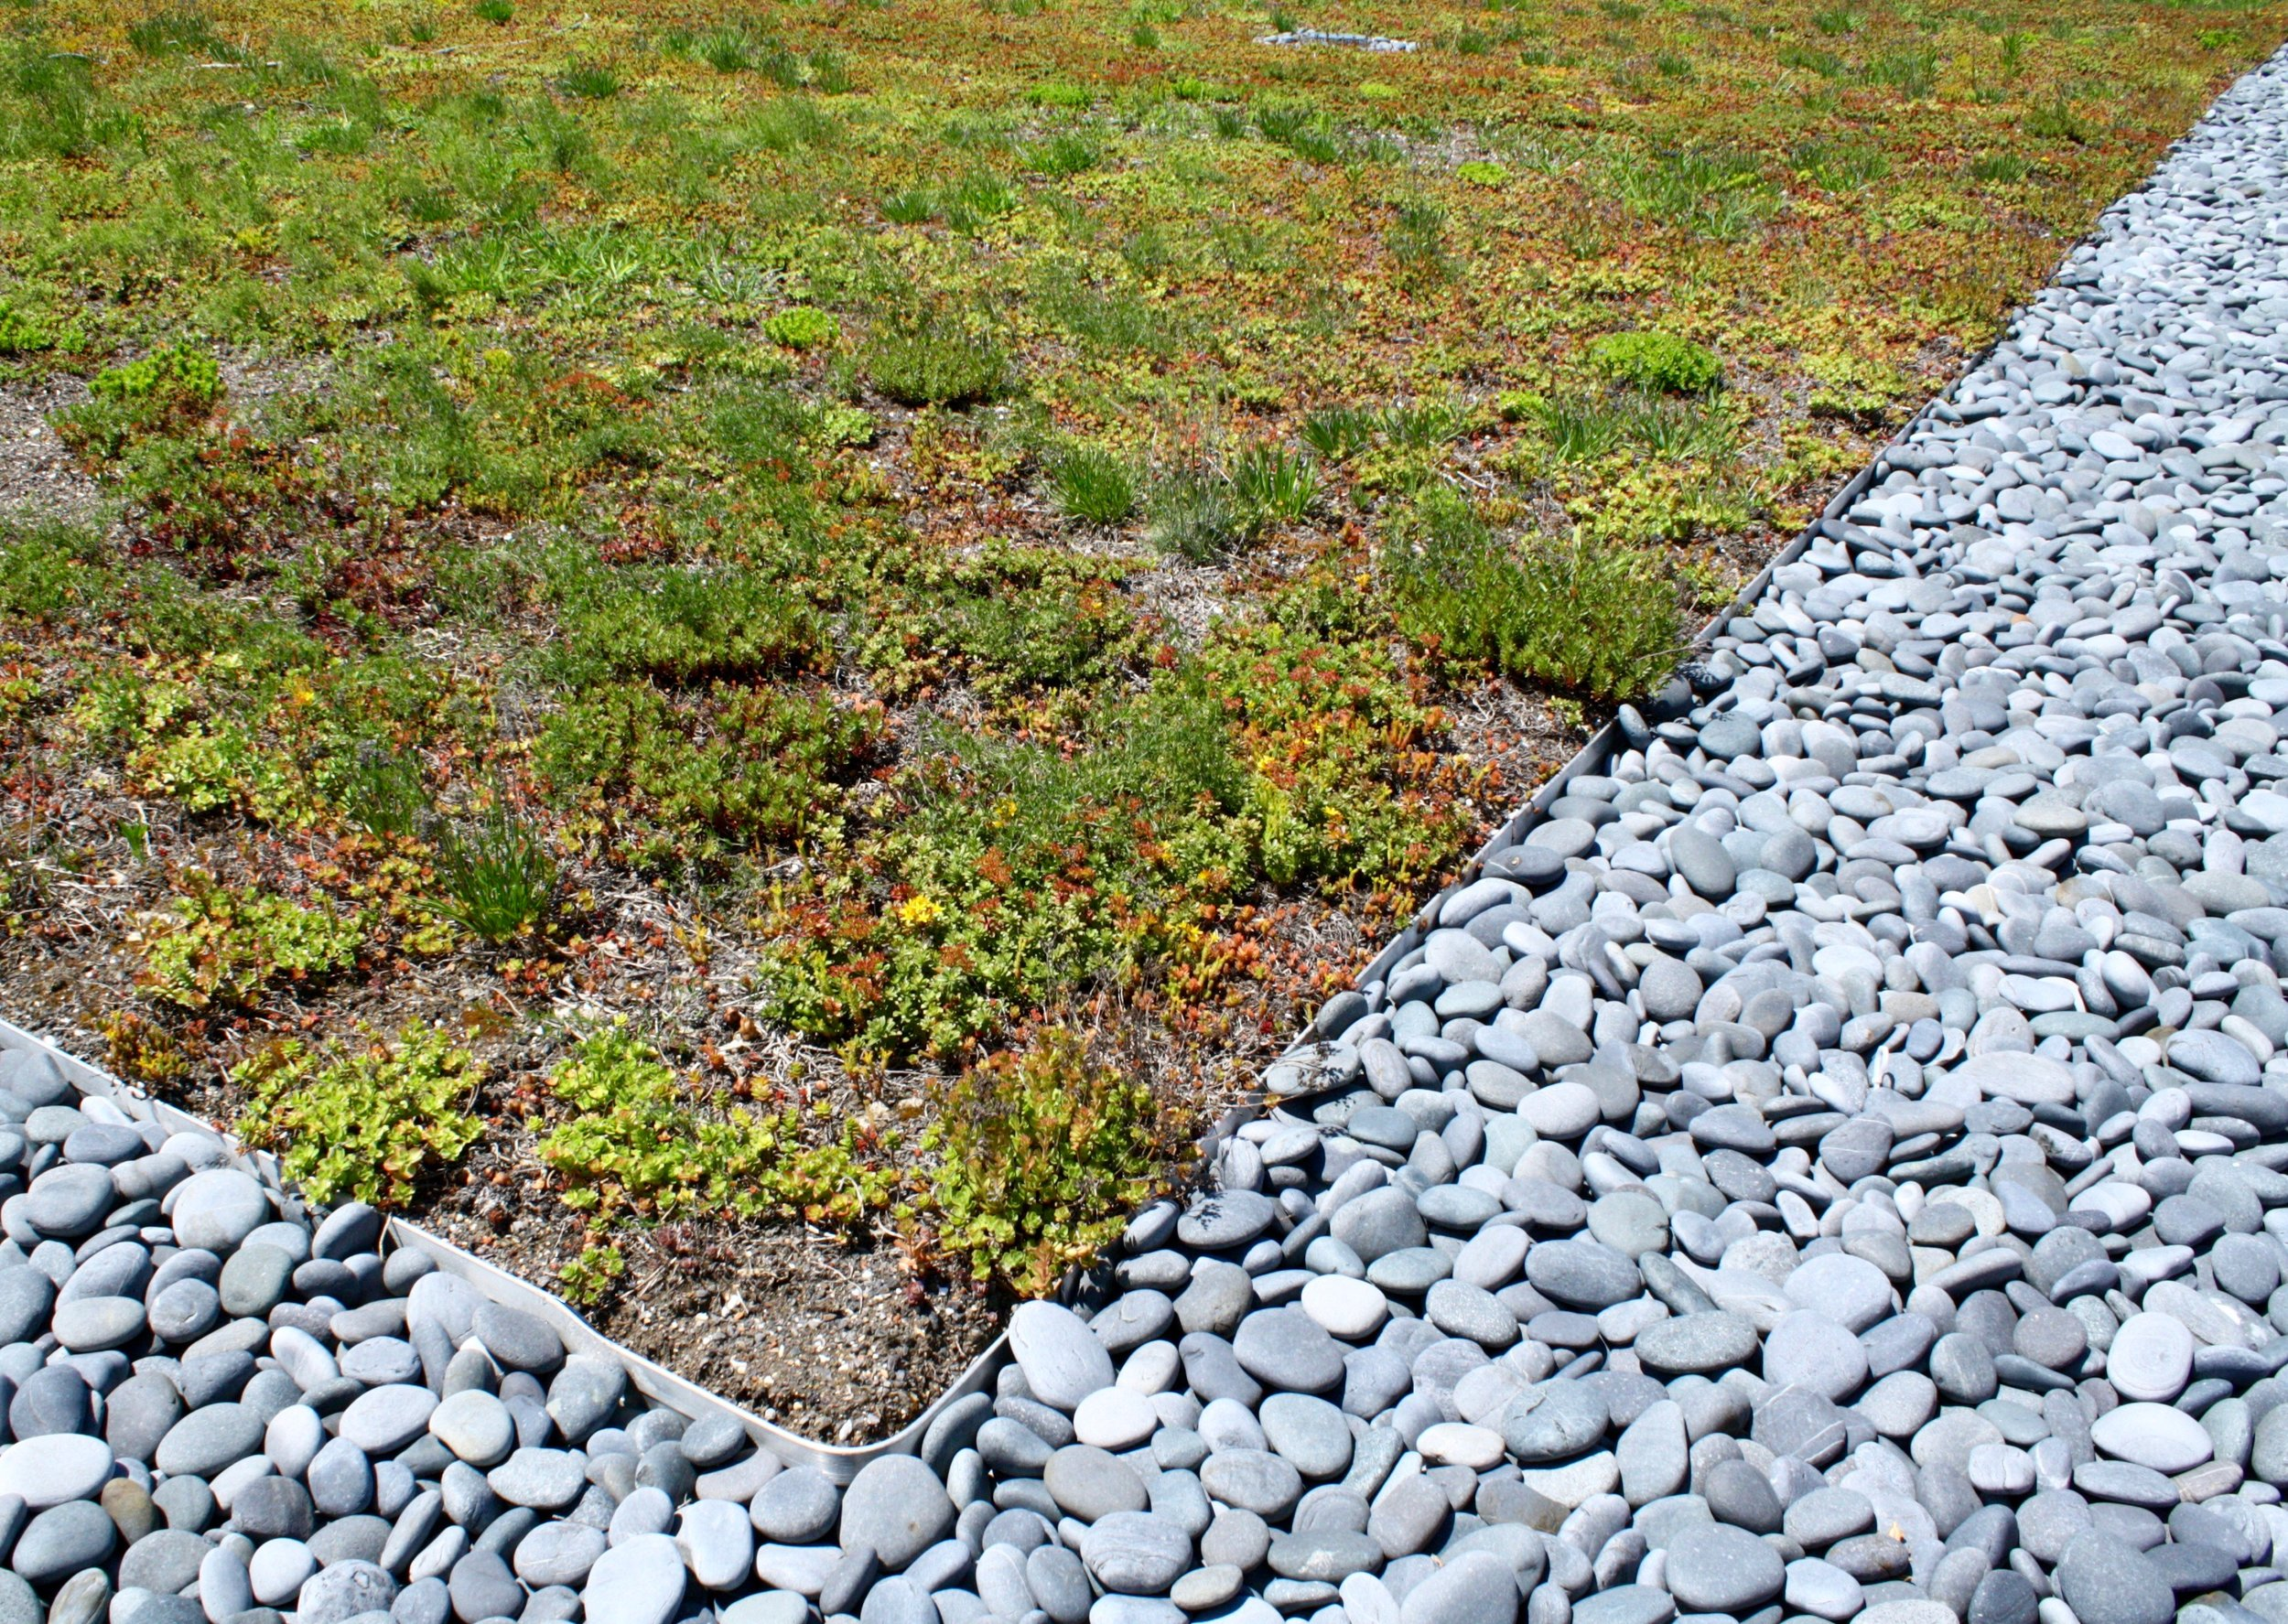 recover-green-roofs-north-shore-cc-2014-4.jpg